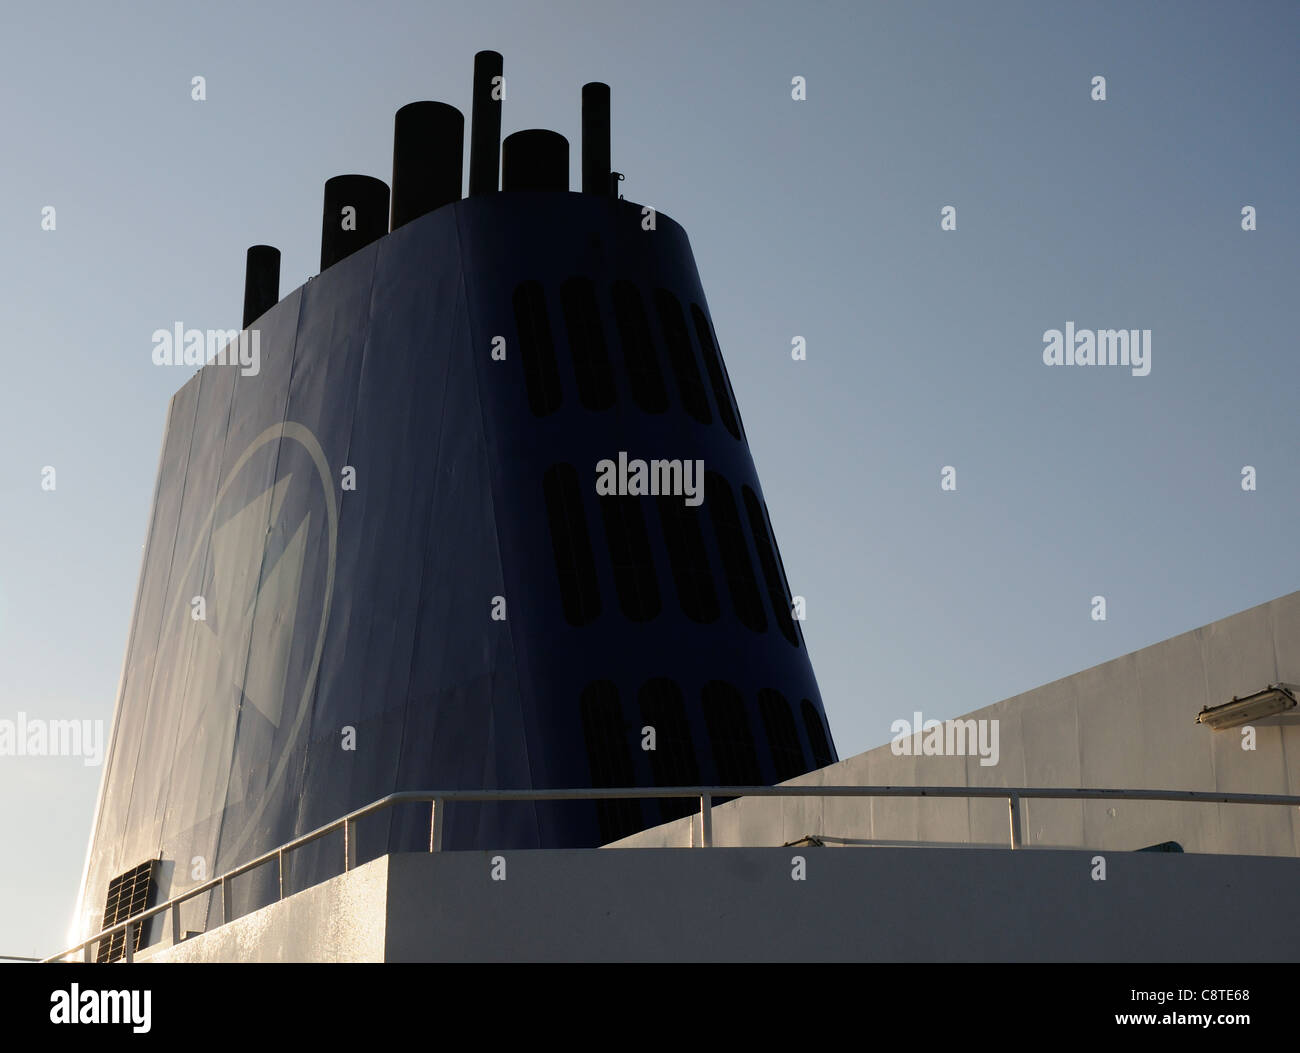 The funnel of a DFDS ferry - Stock Image